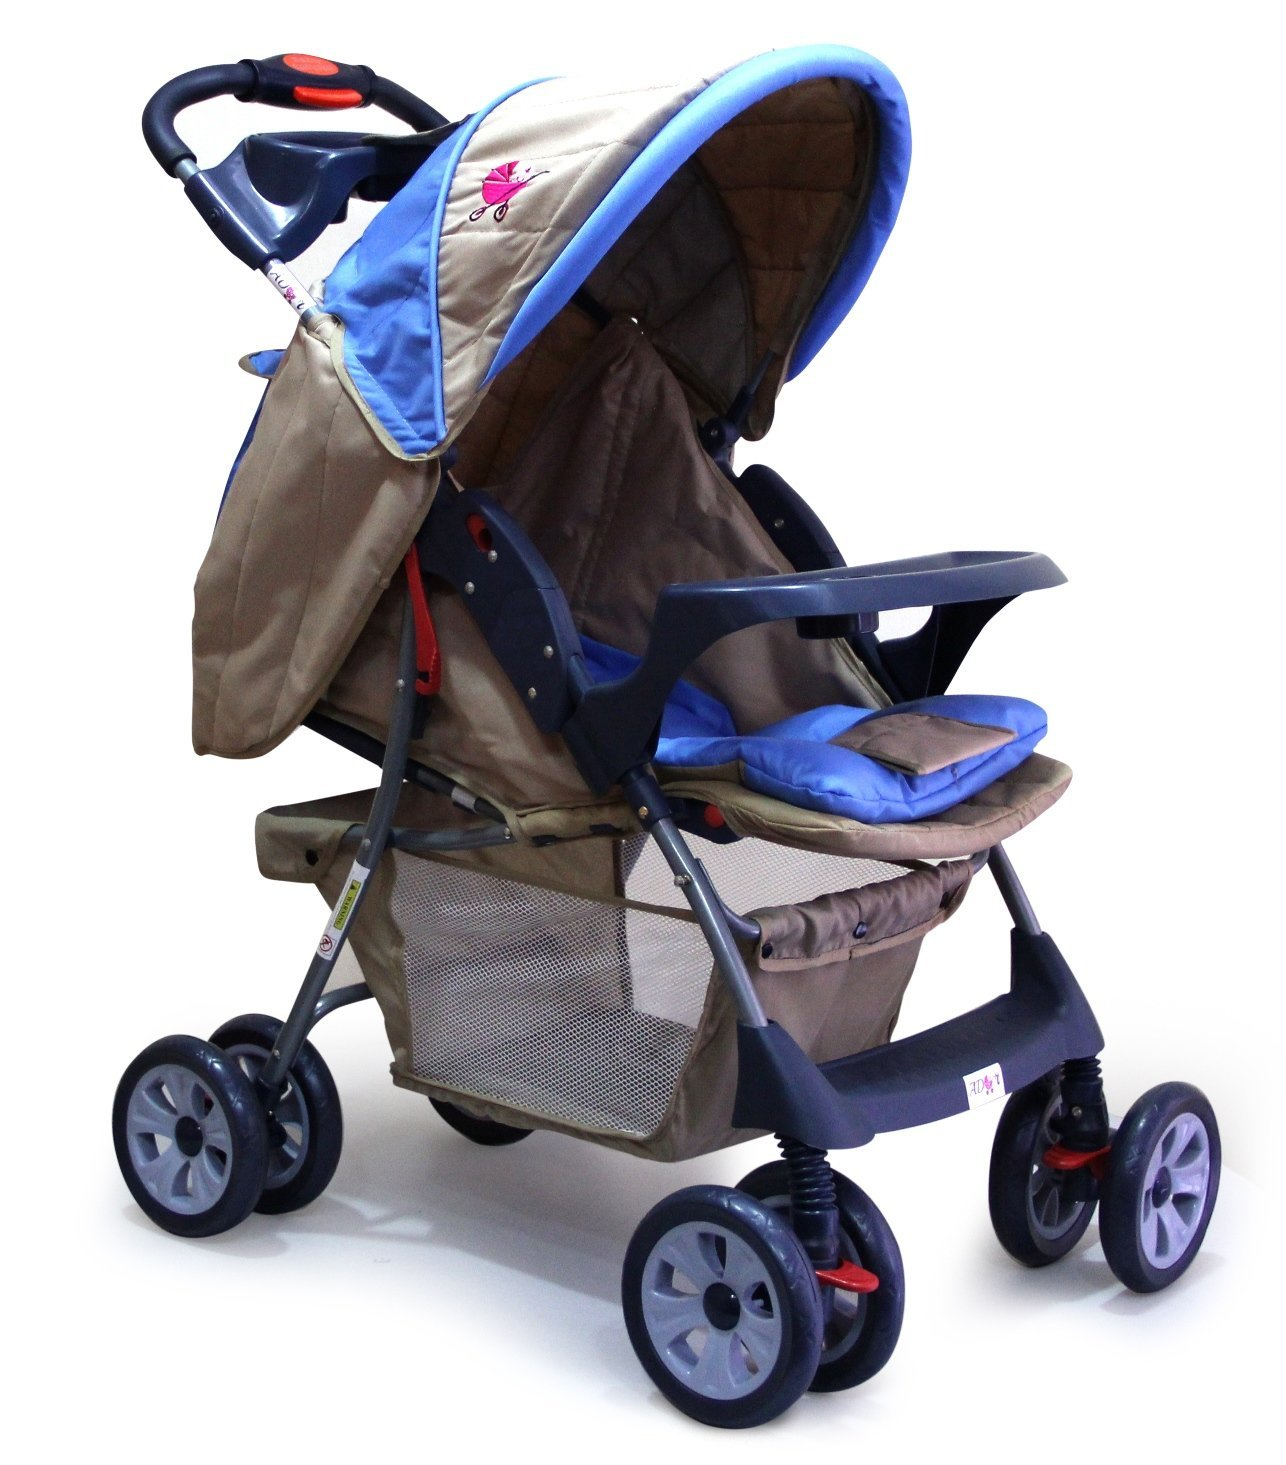 Toddler Stroller India Compare Buy Ador Convenio Baby Stroller 44 Sky Blue Online In India At Best Price Healthgenie In